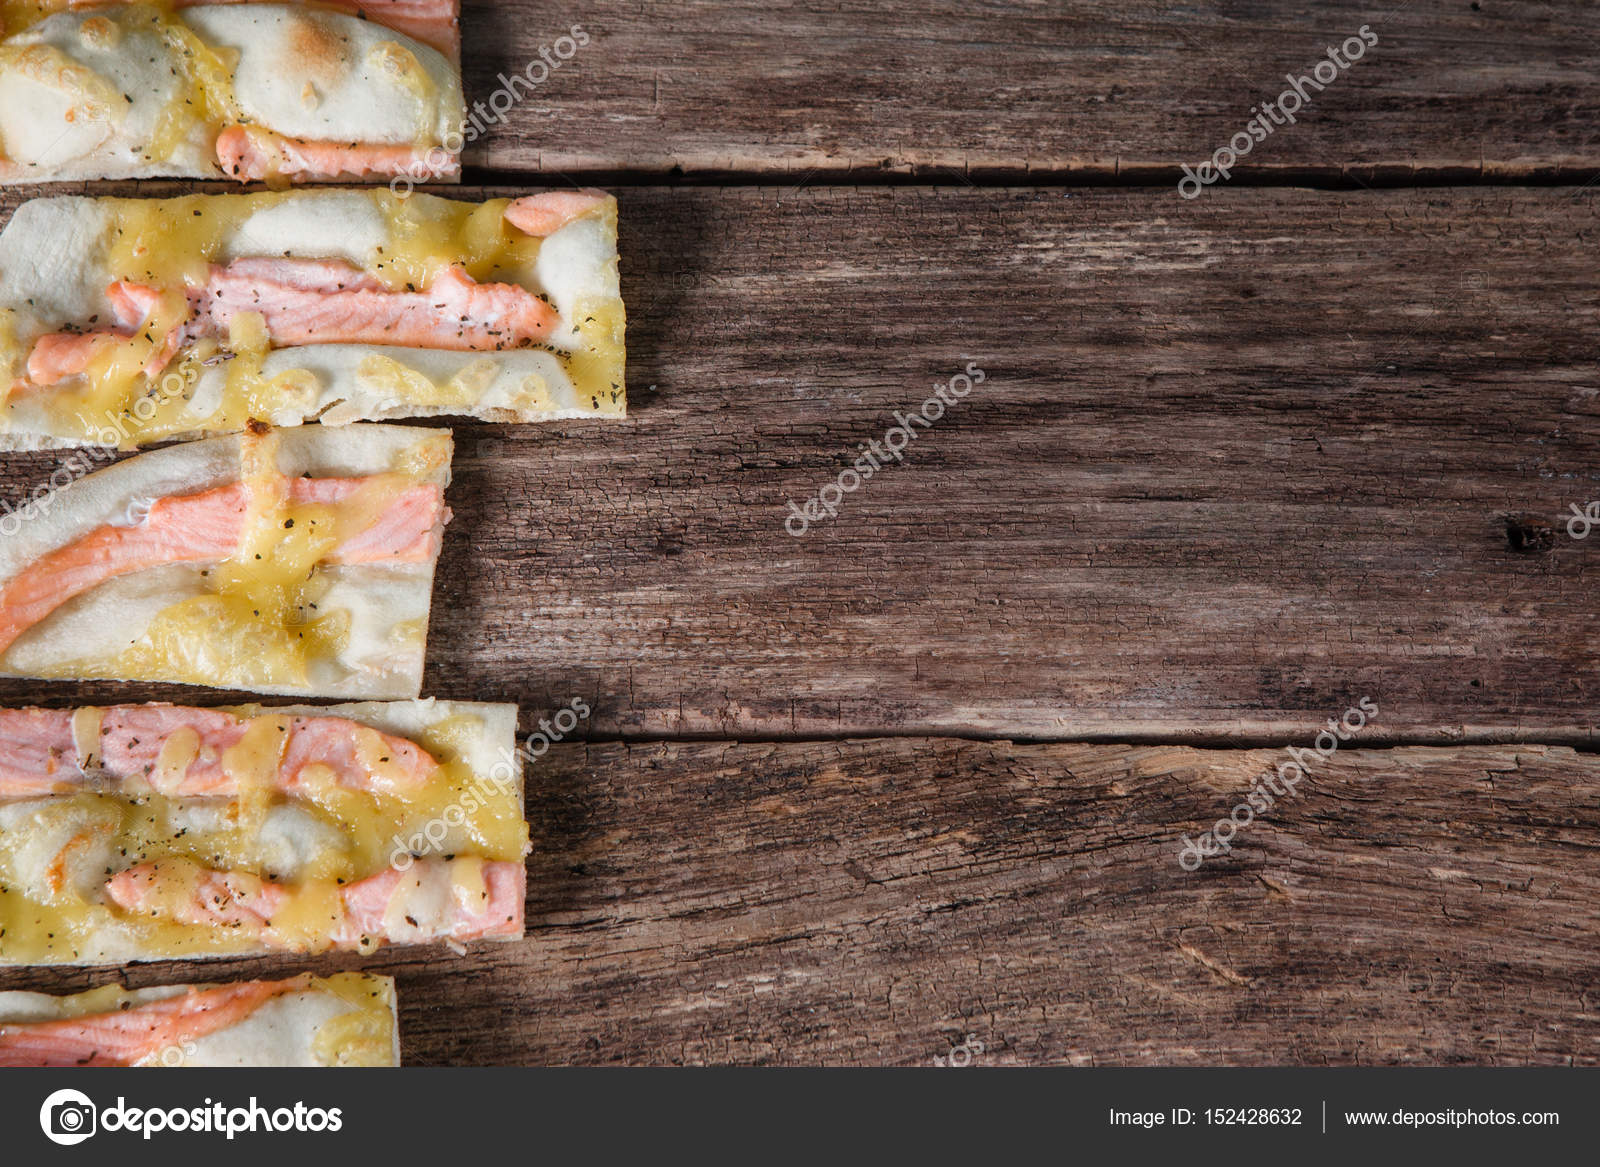 Italian National Food Background Slices Of Appetizing Pizza On Wooden Rustic Table With Free Space For Text Flat Lay Photo By Golubovystock